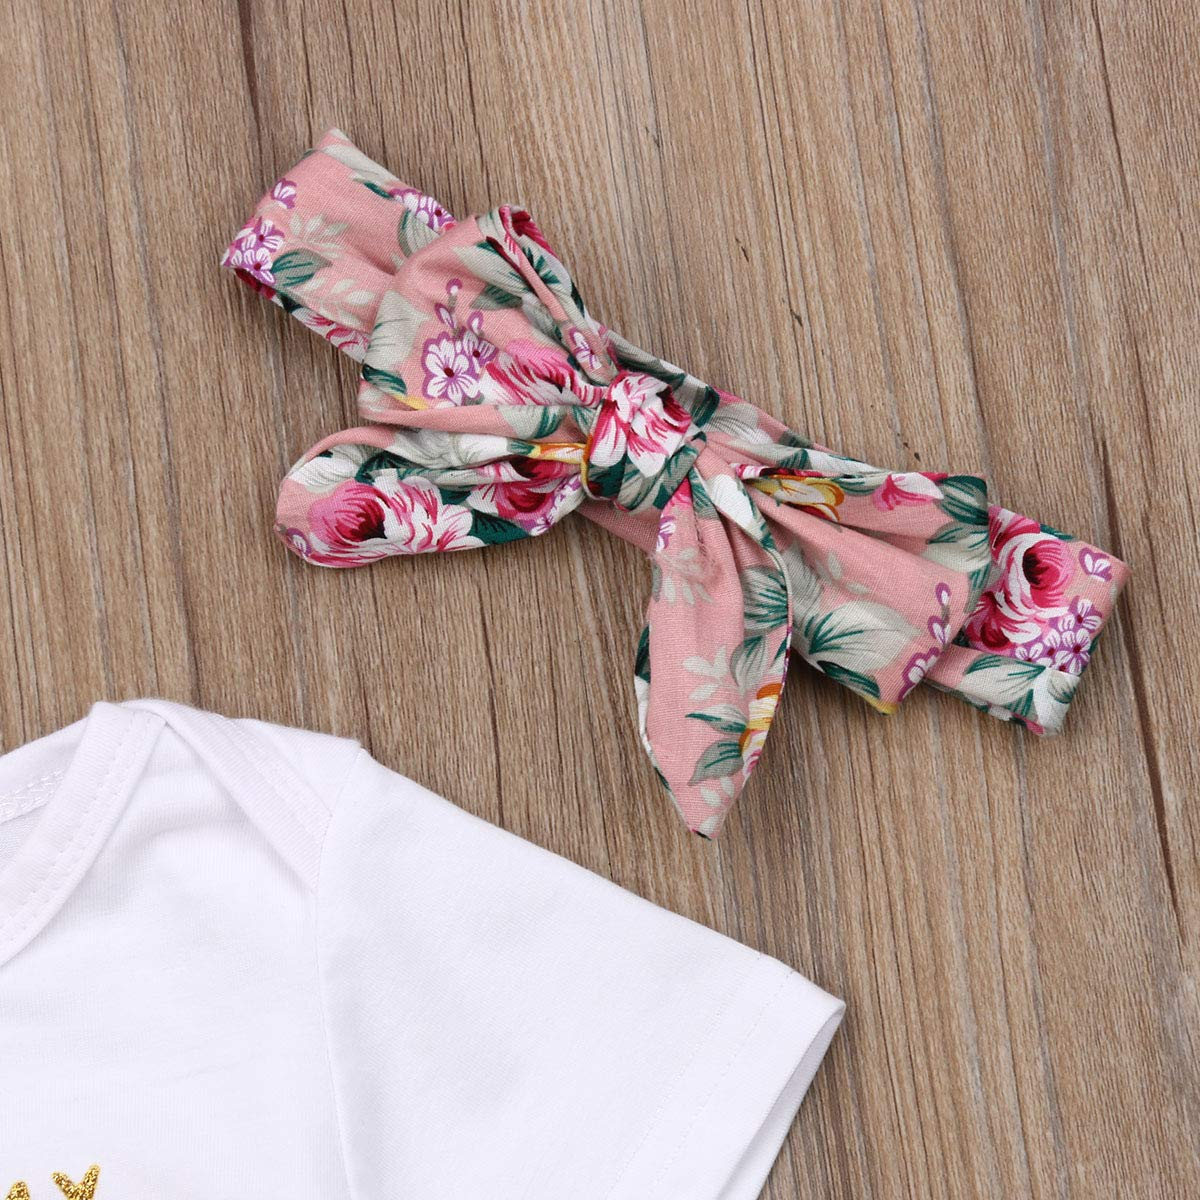 3PCS Baby Girls Worth The Wait//Daddys Girl Print Outfit Clothes Romper Bodysuit Pants Headband Set